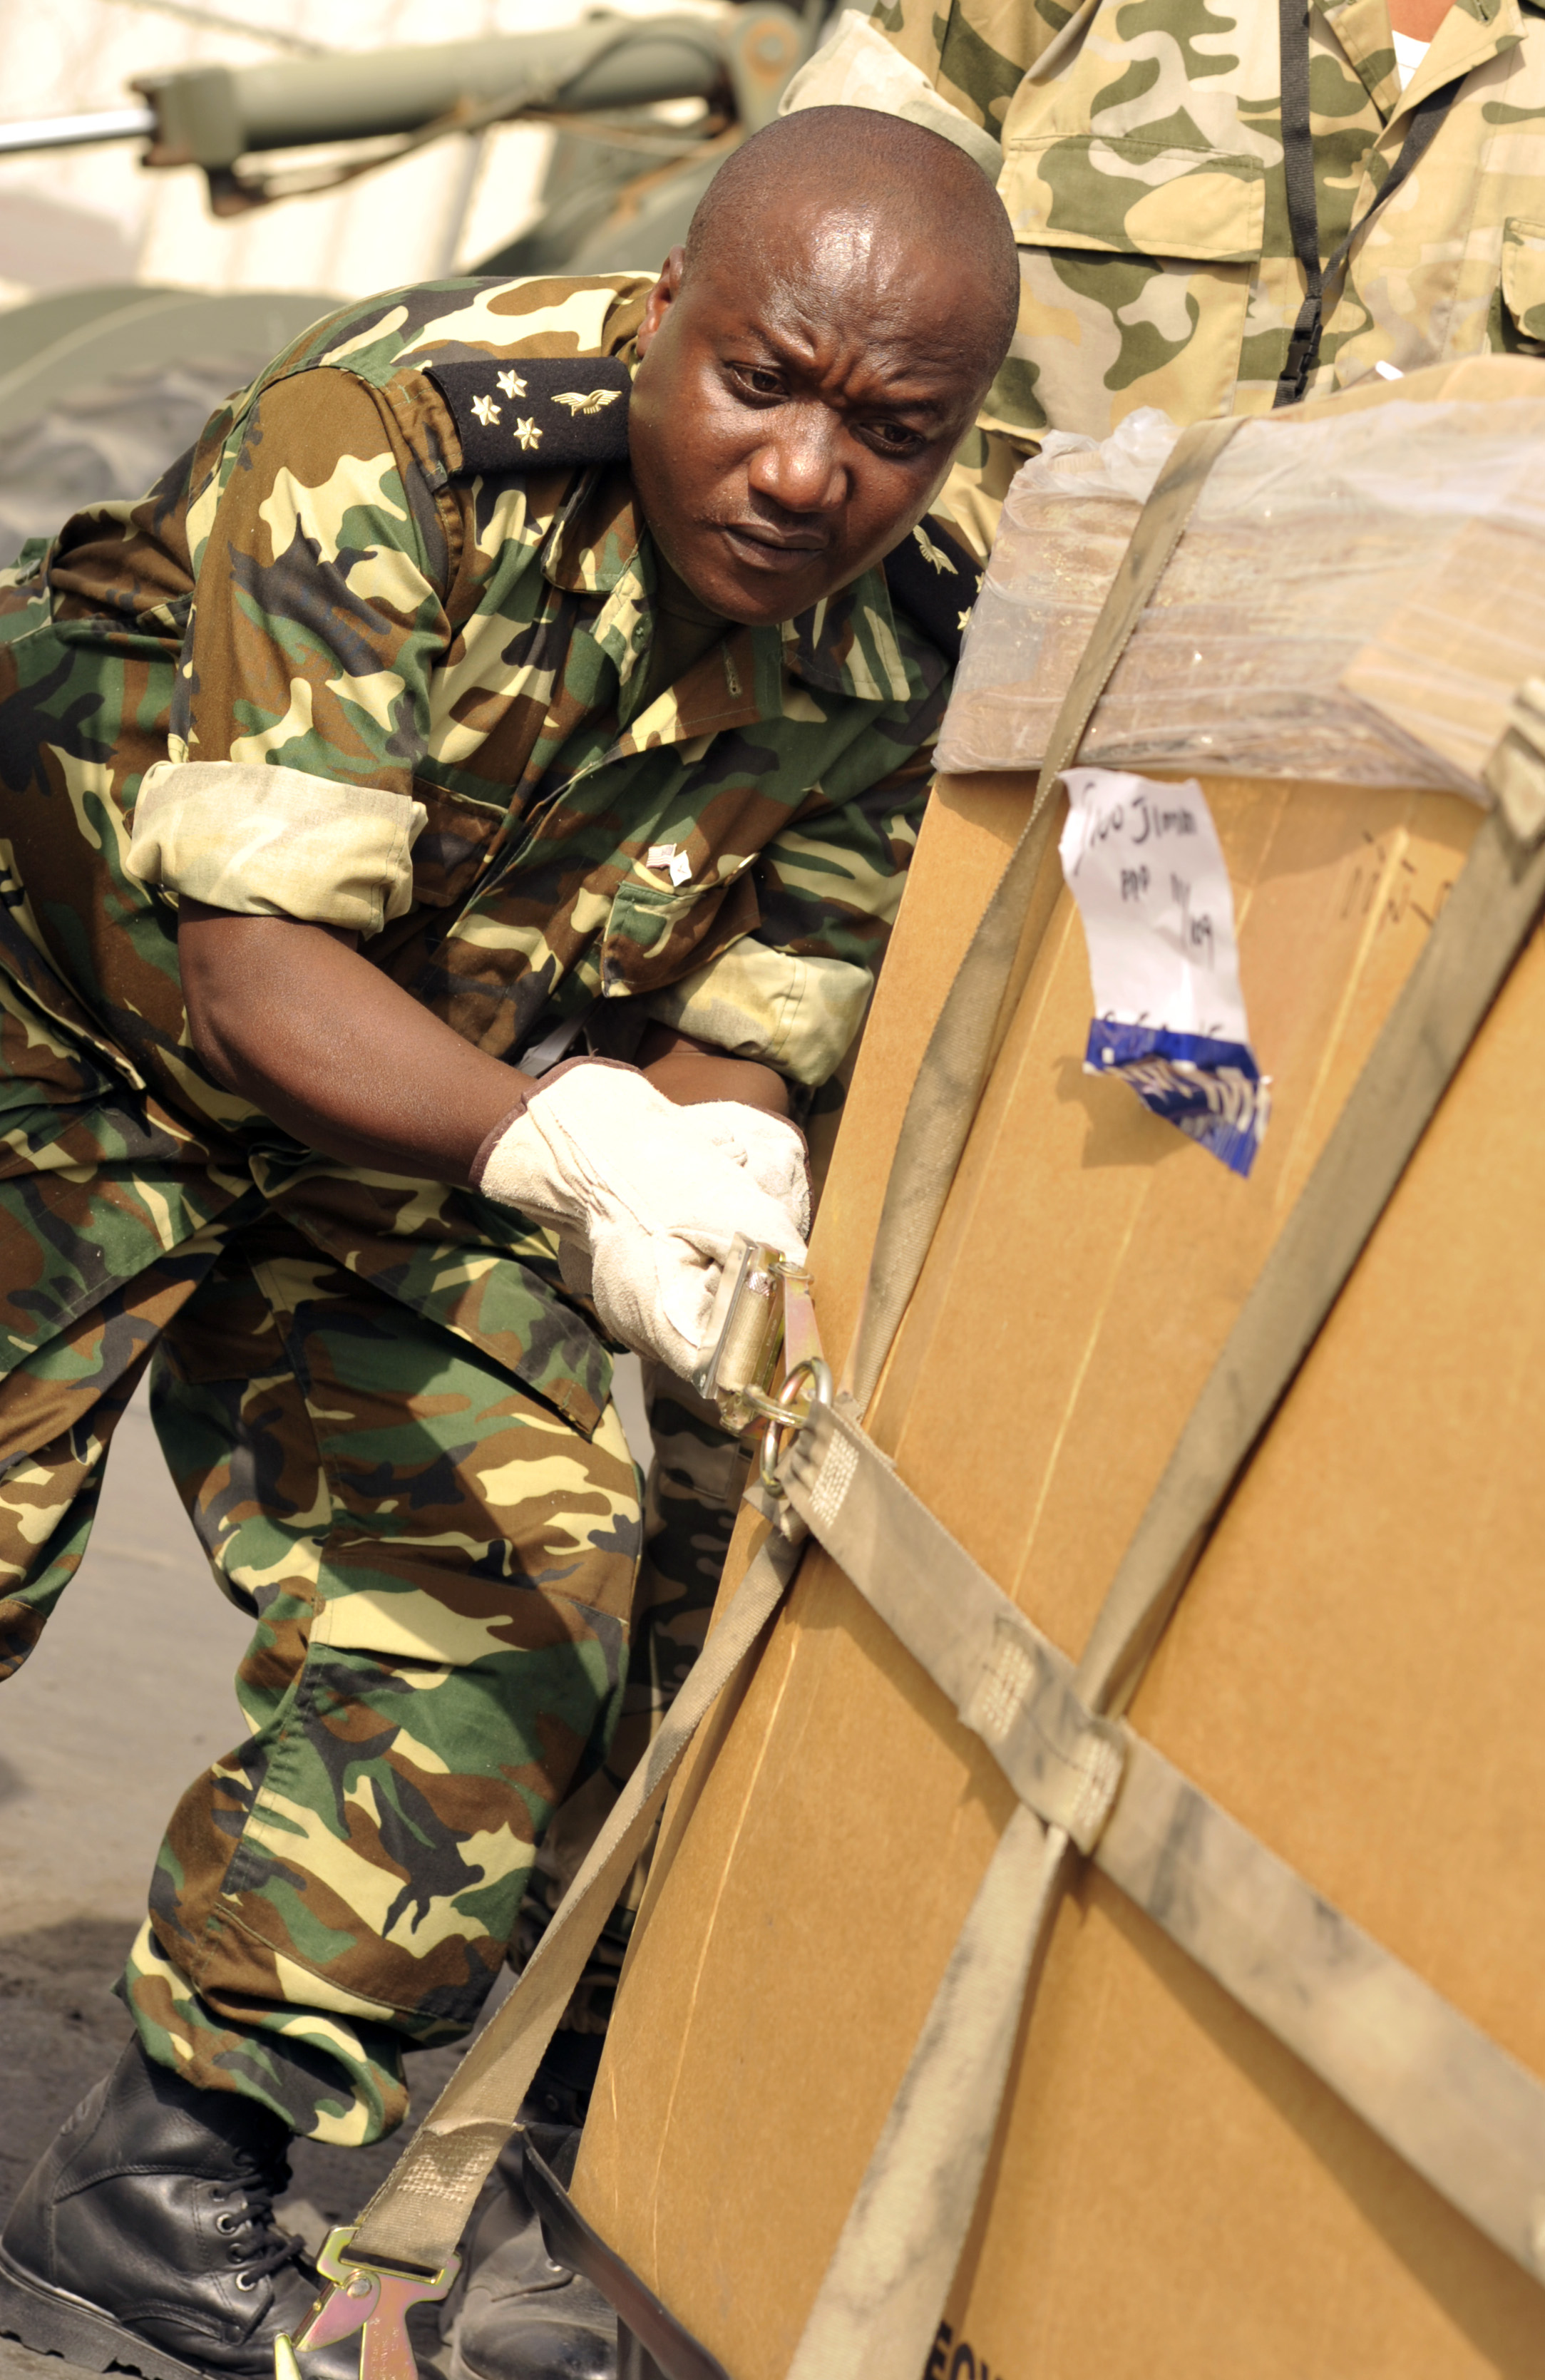 A Burundi air force captain tightens a cargo net as part of an aircraft cargo knowledge exchange during African Partnership Flight–Djibouti at Djibouti Air Base, Feb. 10, 2015.  APF is the premiere program to bring together partner nations to increase cooperation and interoperability, which fosters stability and security throughout the continent. (U.S. Air Force Photo by Tech. Sgt. Ian Dean)